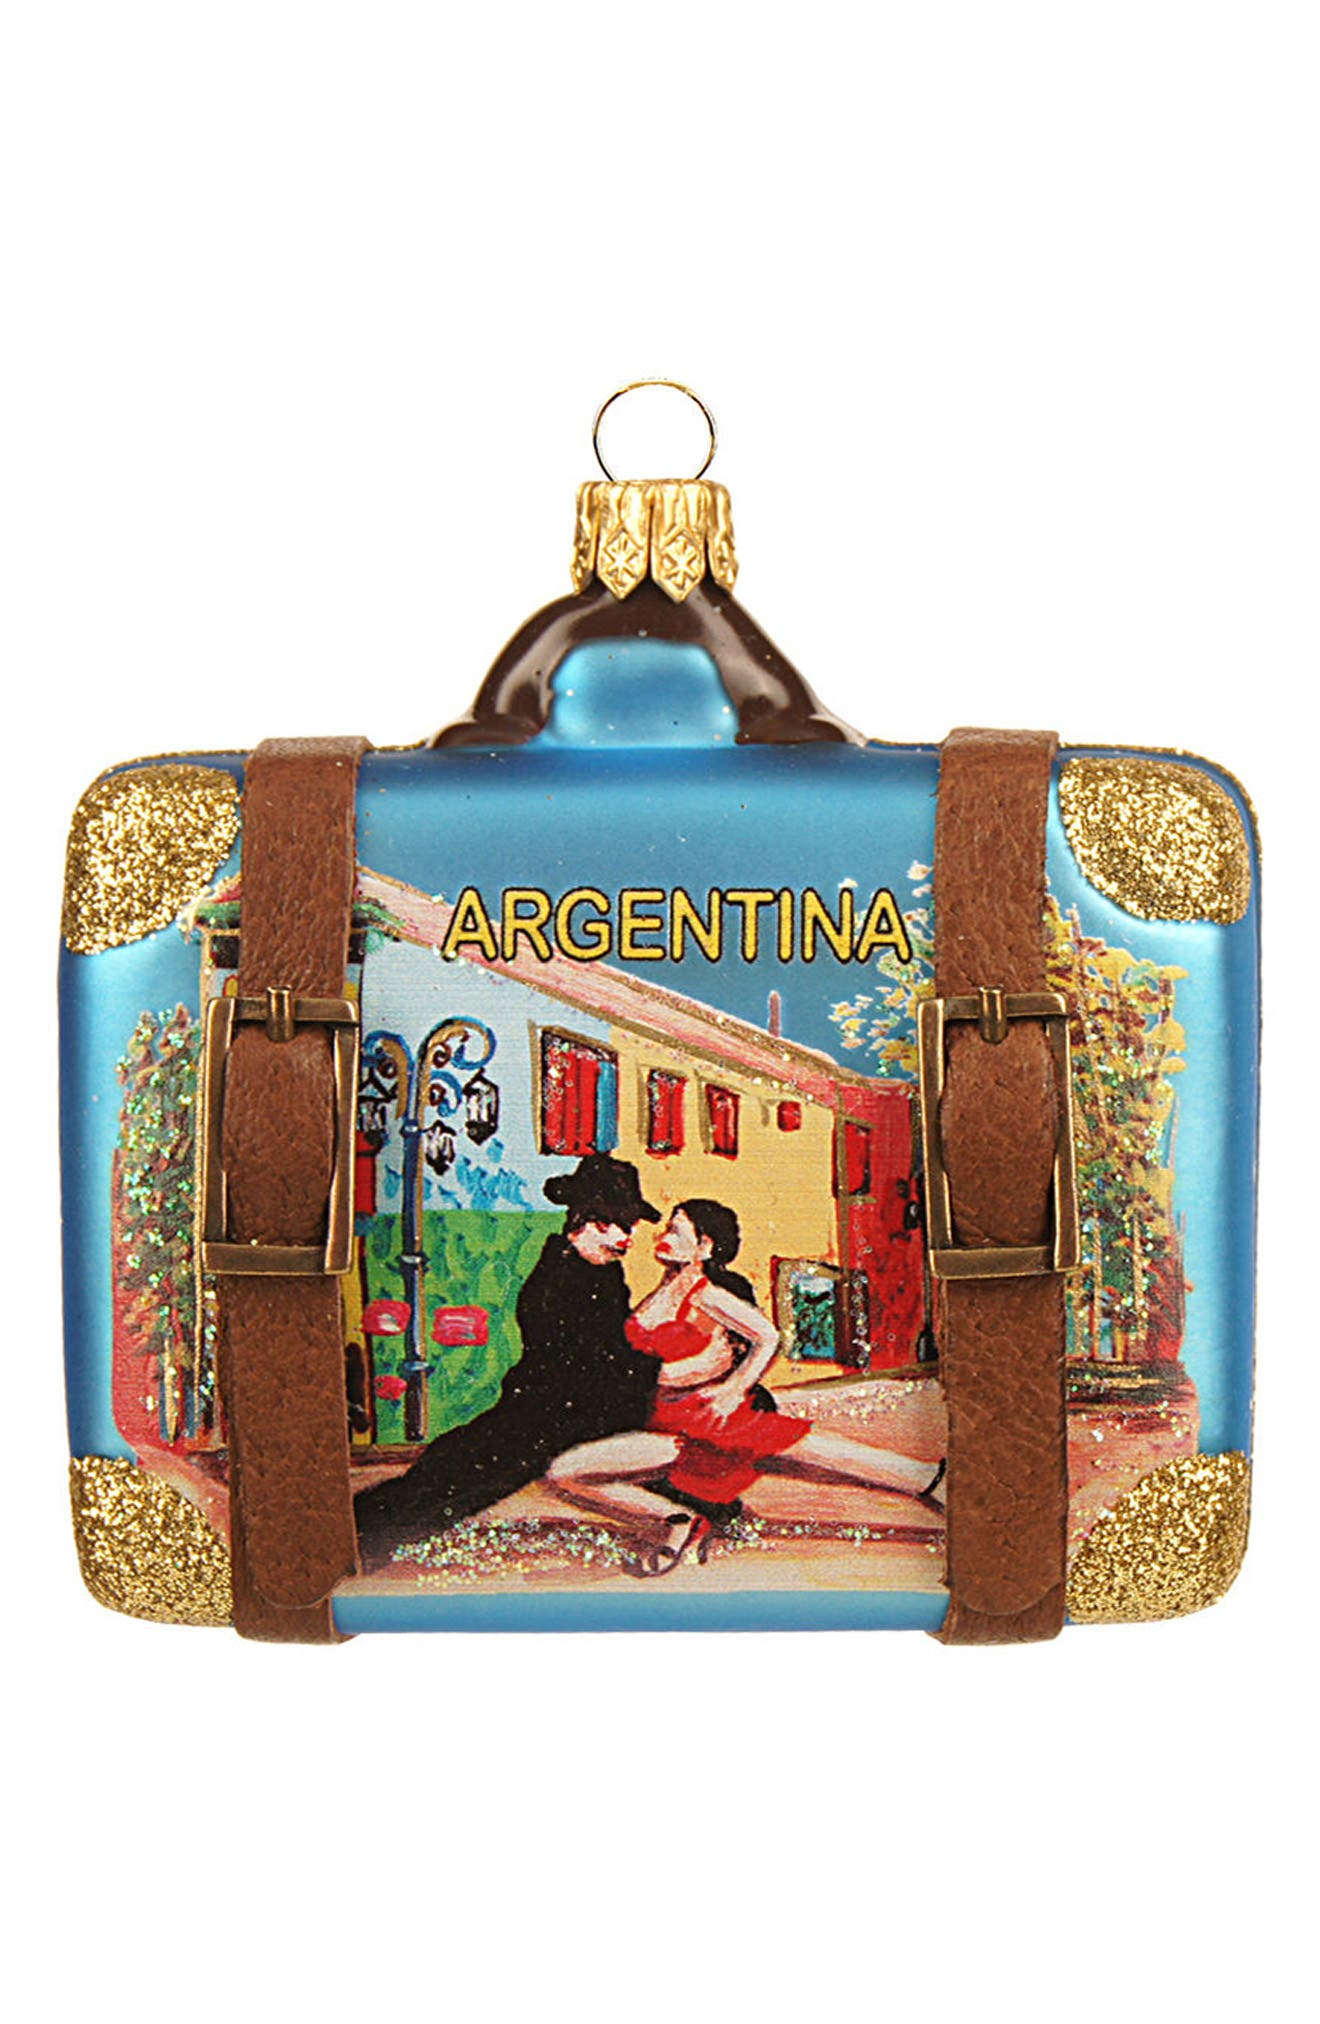 Nordstrom at Home Handblown Glass Travel Suitcase Ornament